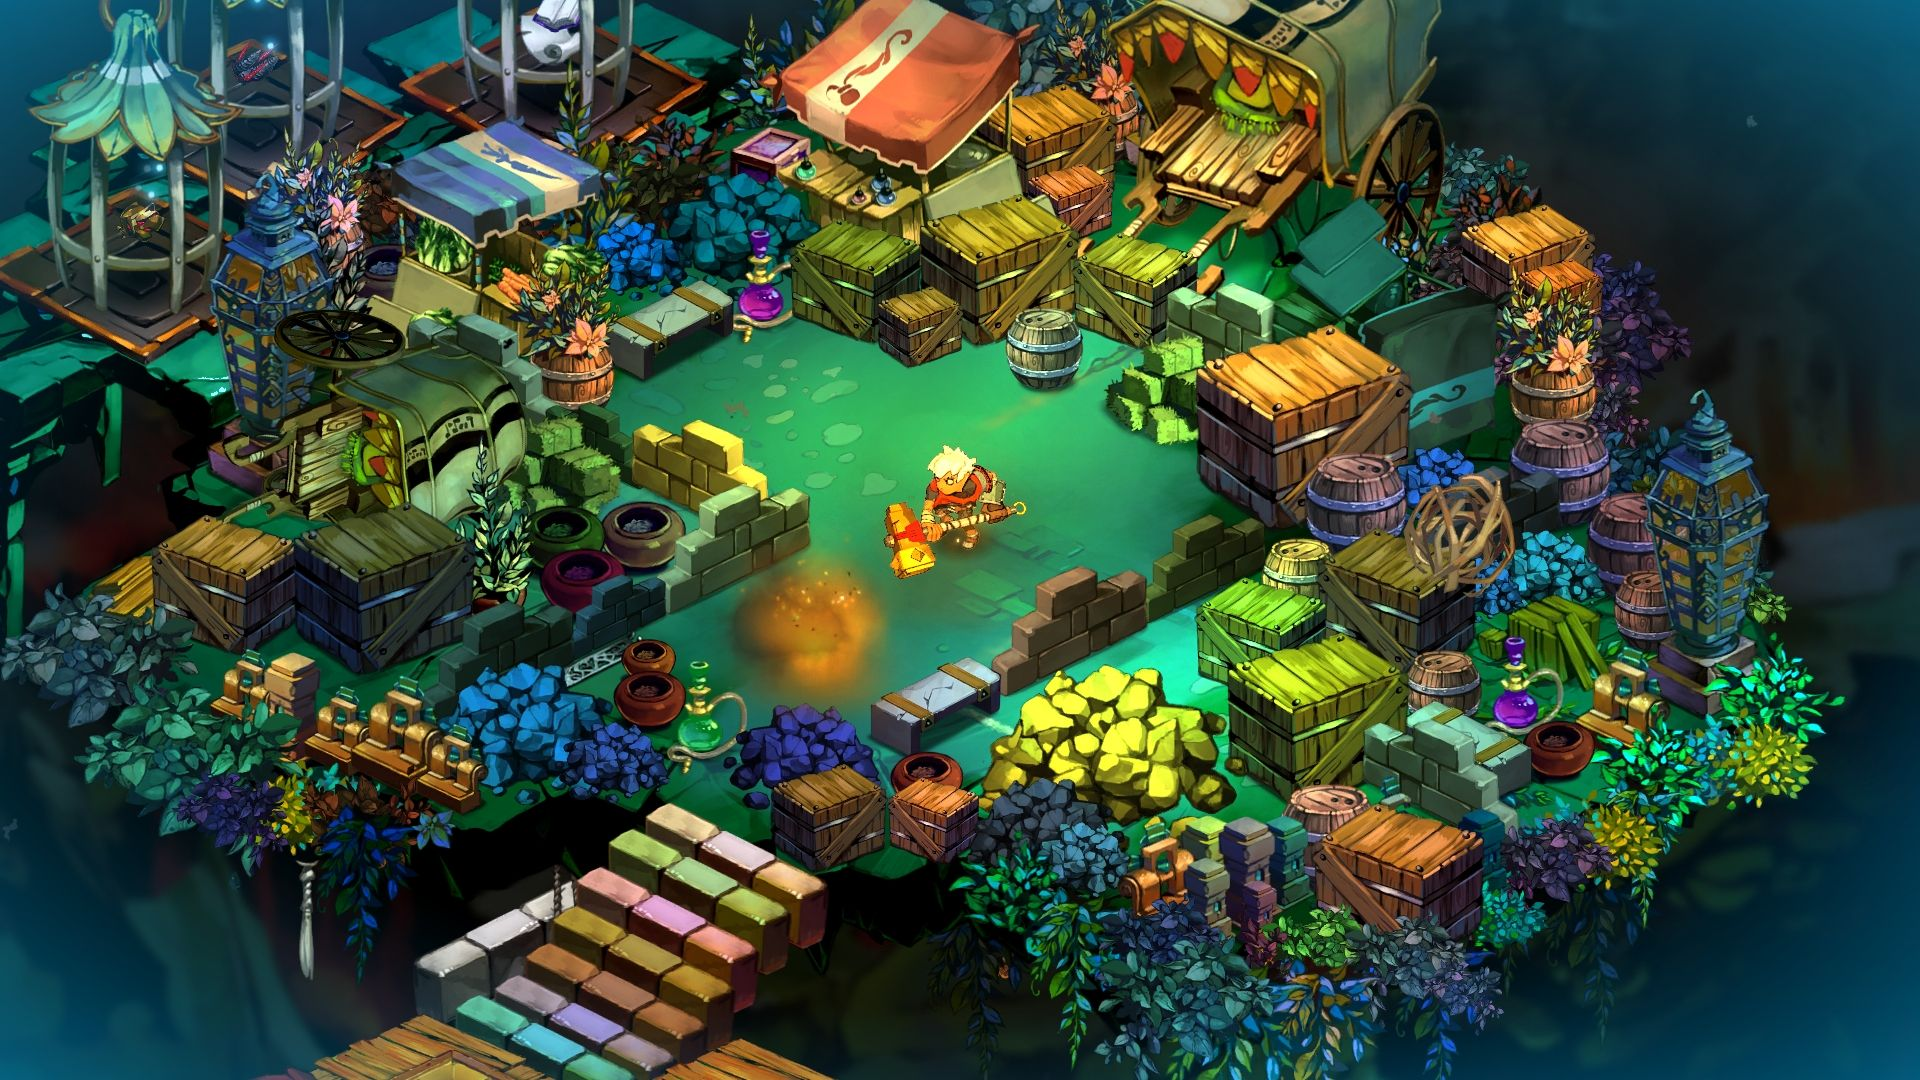 The 100 Best Indie PC Games | Page 5 of 10 | The Indie Game Website